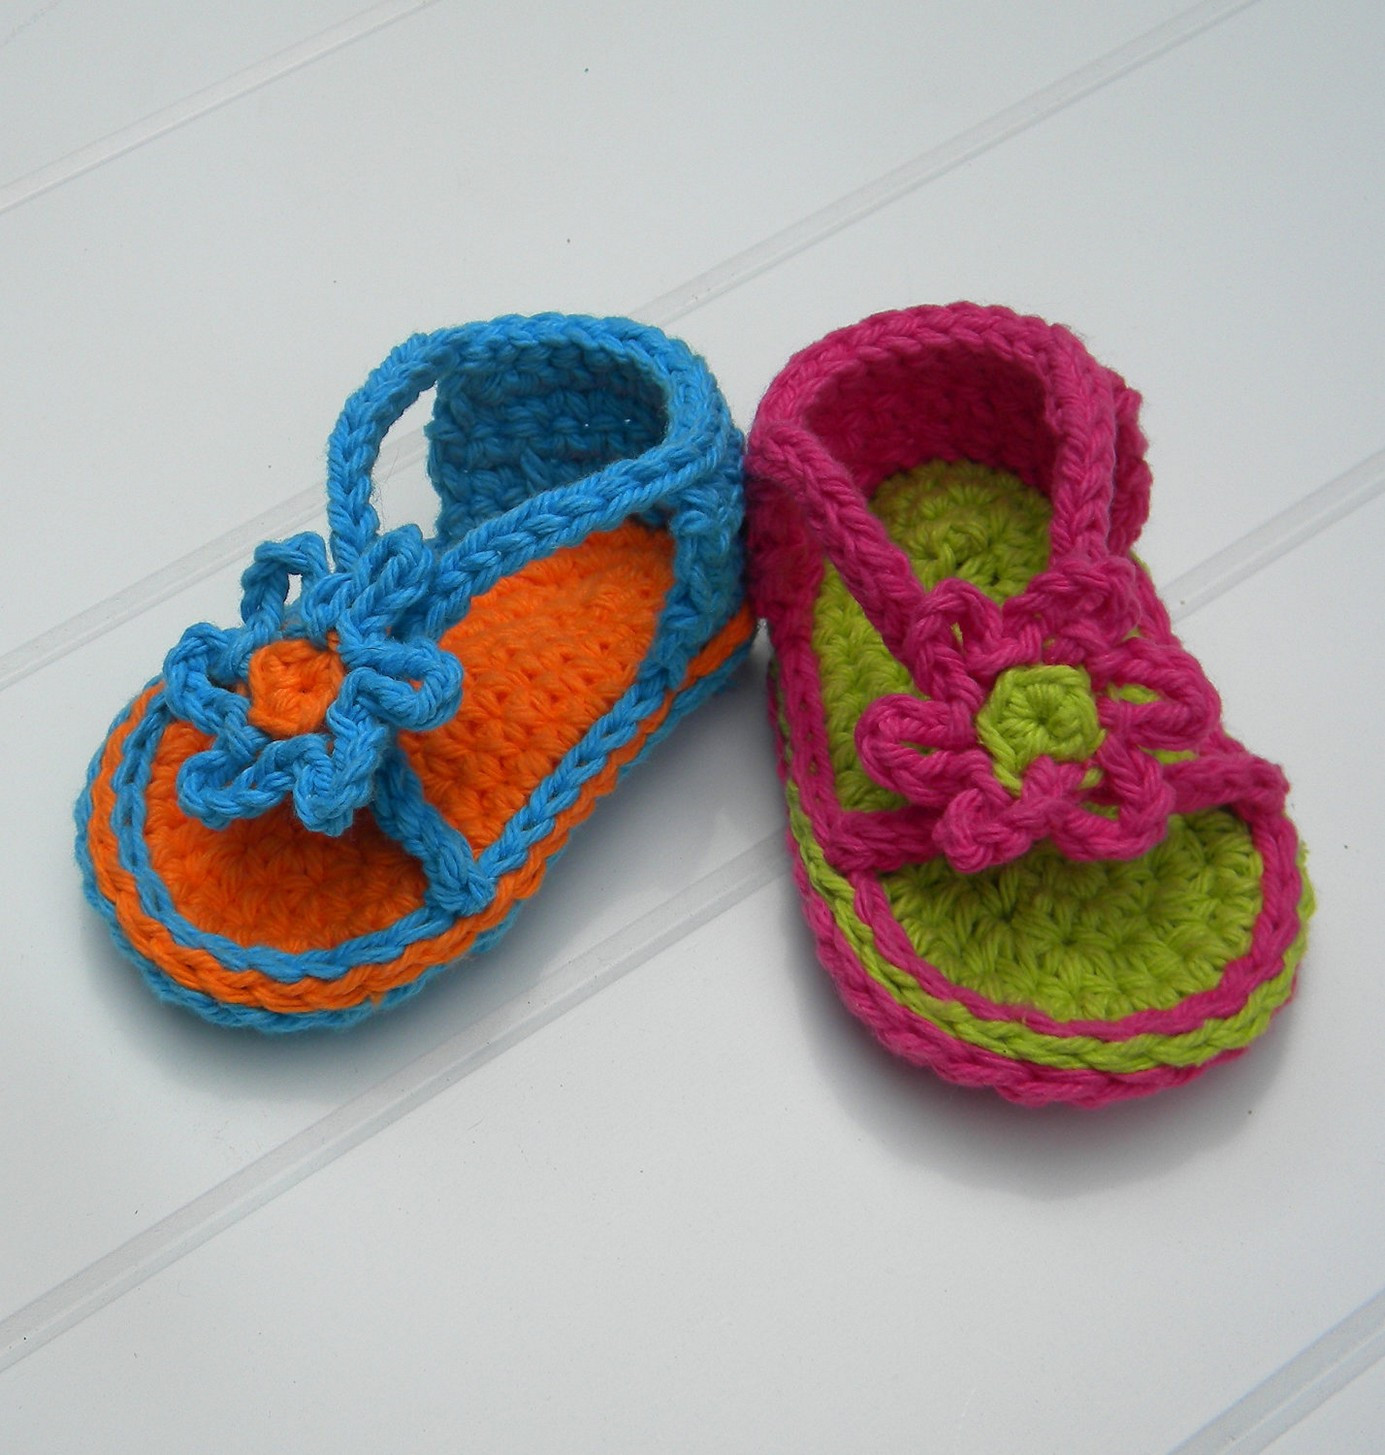 Newborn Crochet Patterns Awesome Crochet Baby Flip Flops for Boys and Girls fortable Wear Of Incredible 41 Ideas Newborn Crochet Patterns